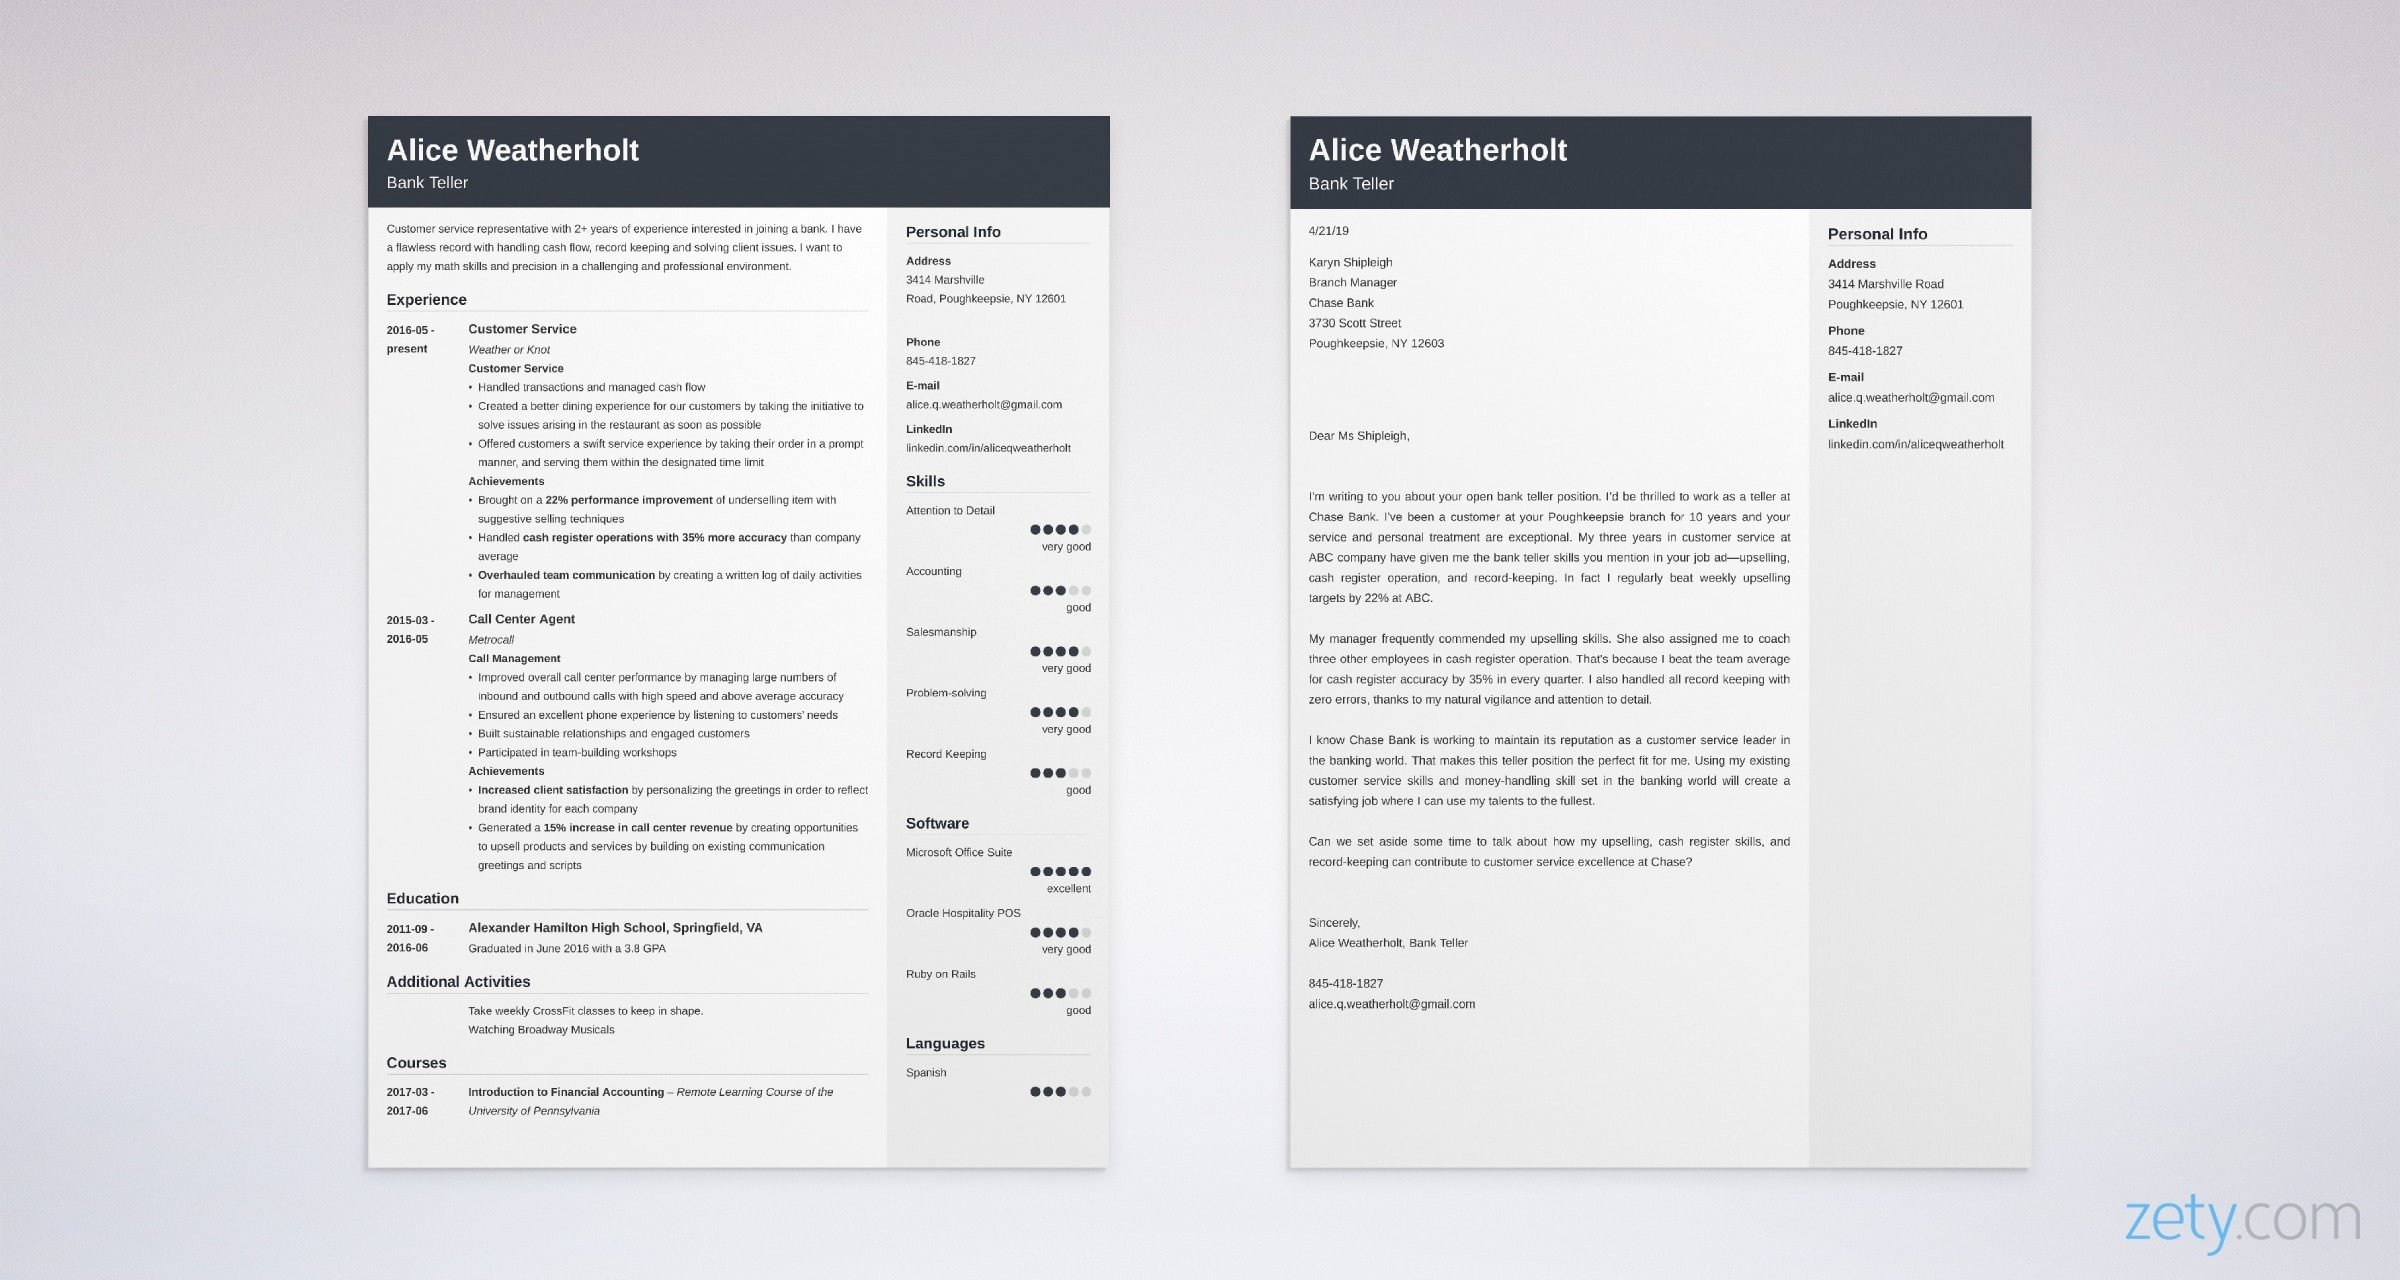 Bank Teller Cover Letter: Samples, Format & Complete Writing ...